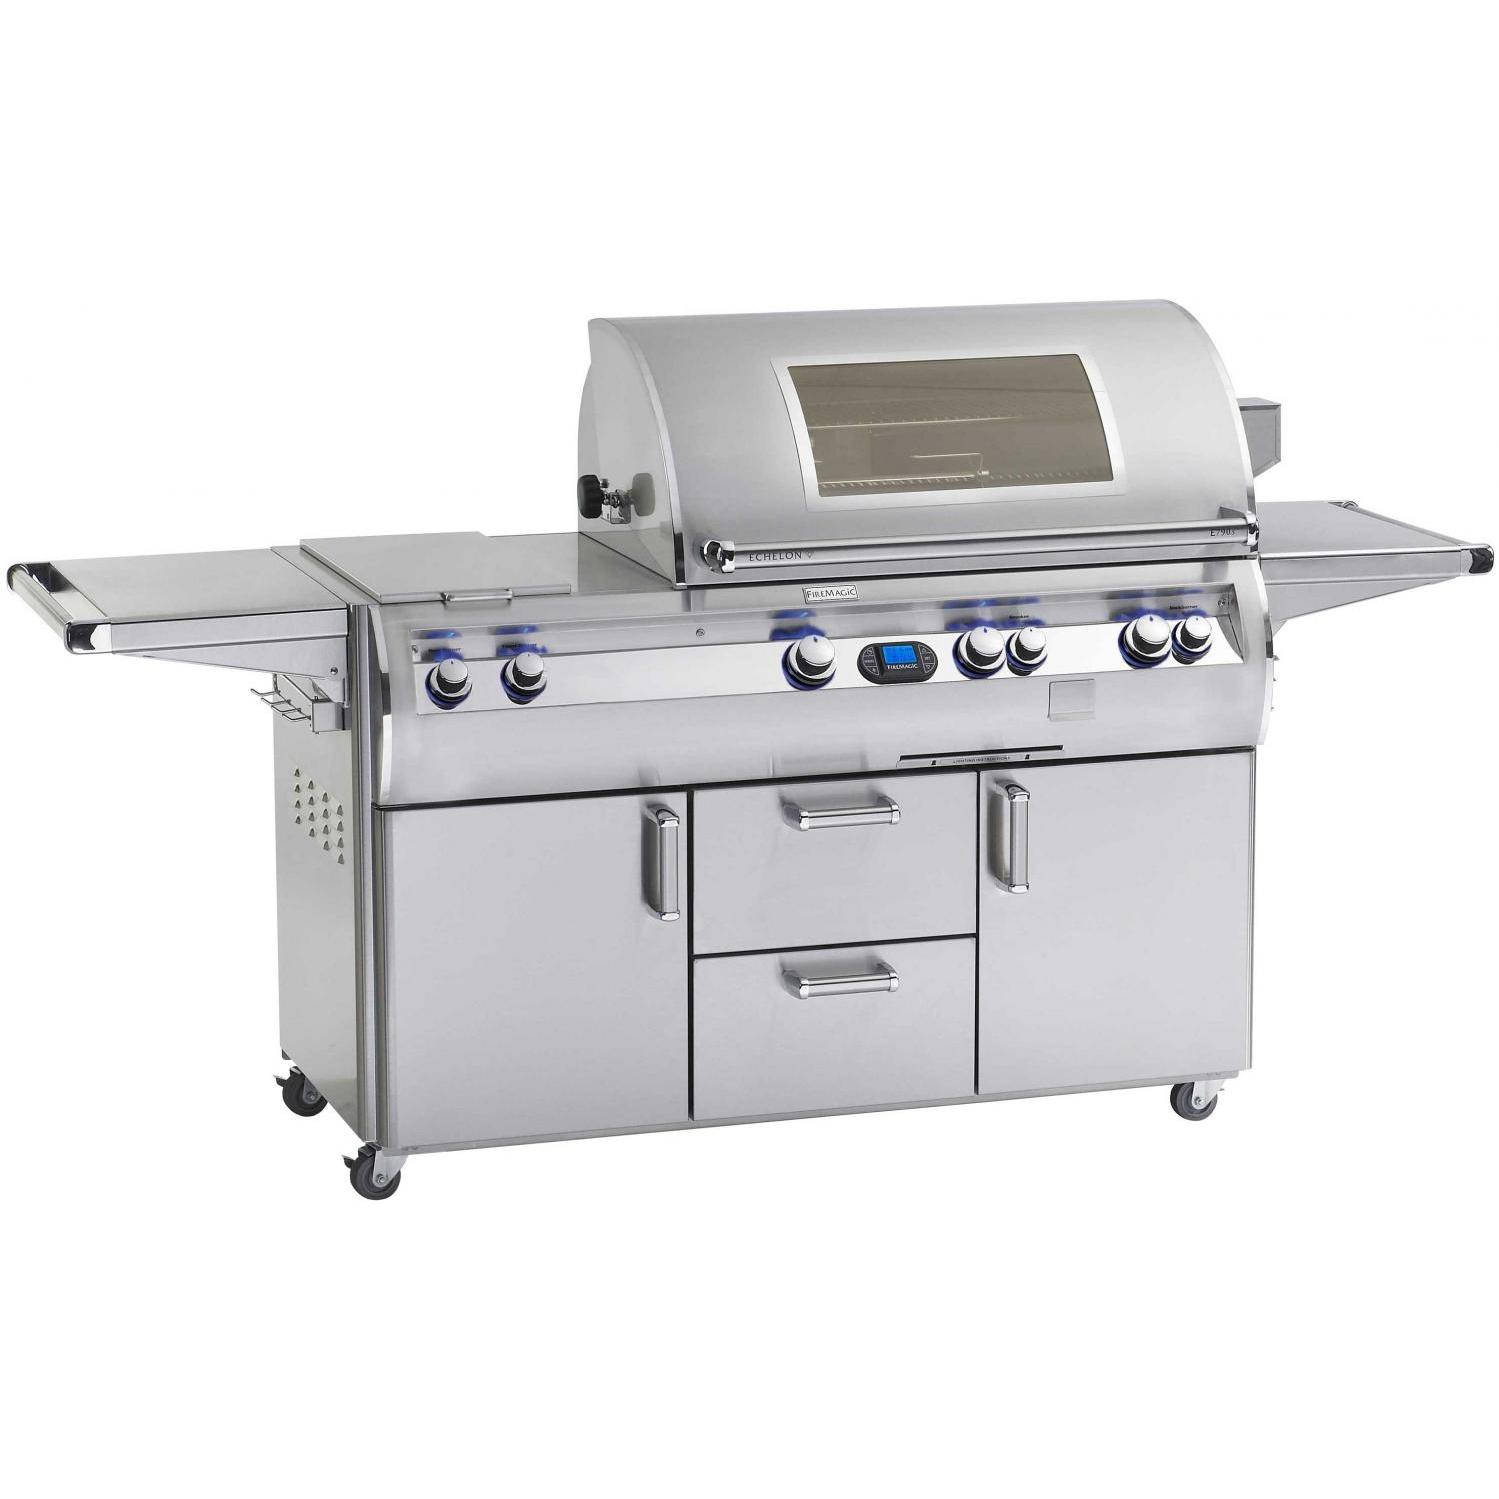 Fire Magic Echelon Diamond E660s Natural Gas Grill With Double Side Burner, Power Hood And Magic View Window On Cart at Sears.com